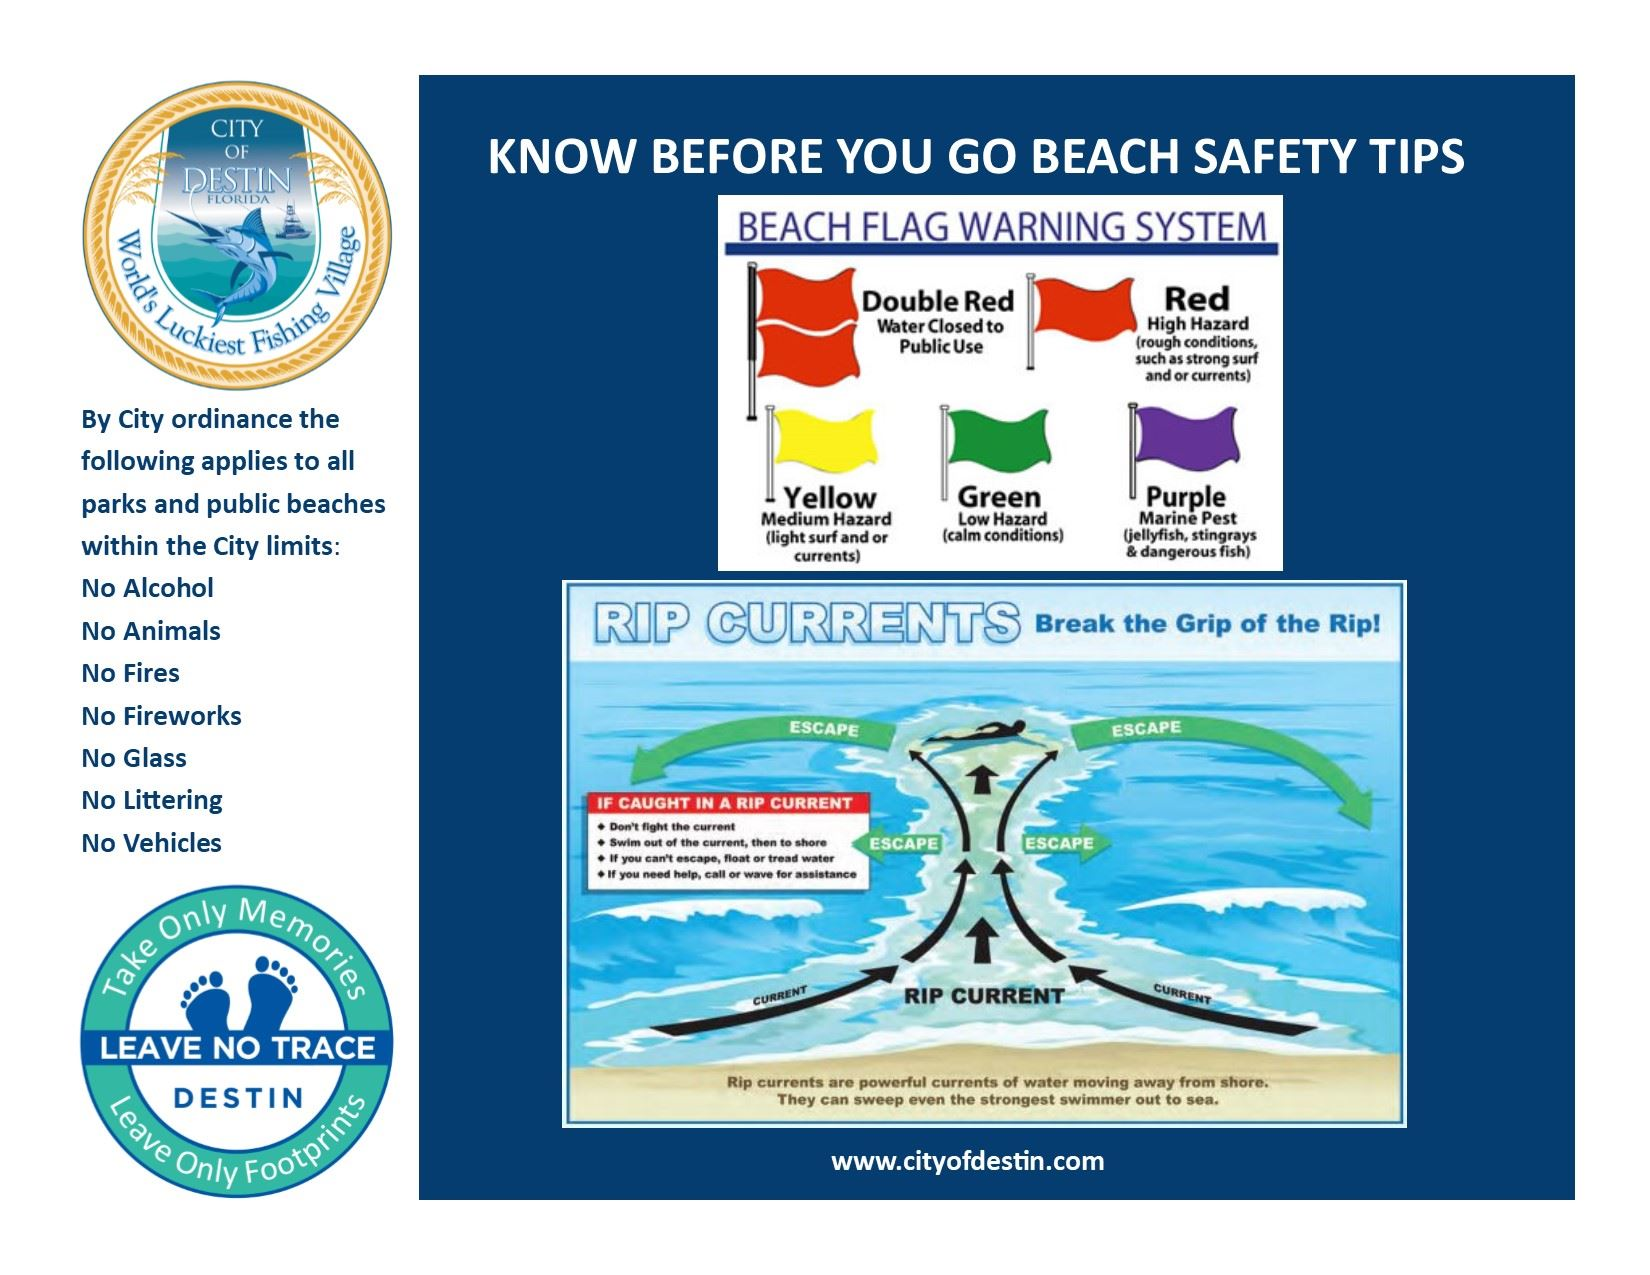 Photo of Beach Flag Warning System, Rip Current Information and City Ordinances